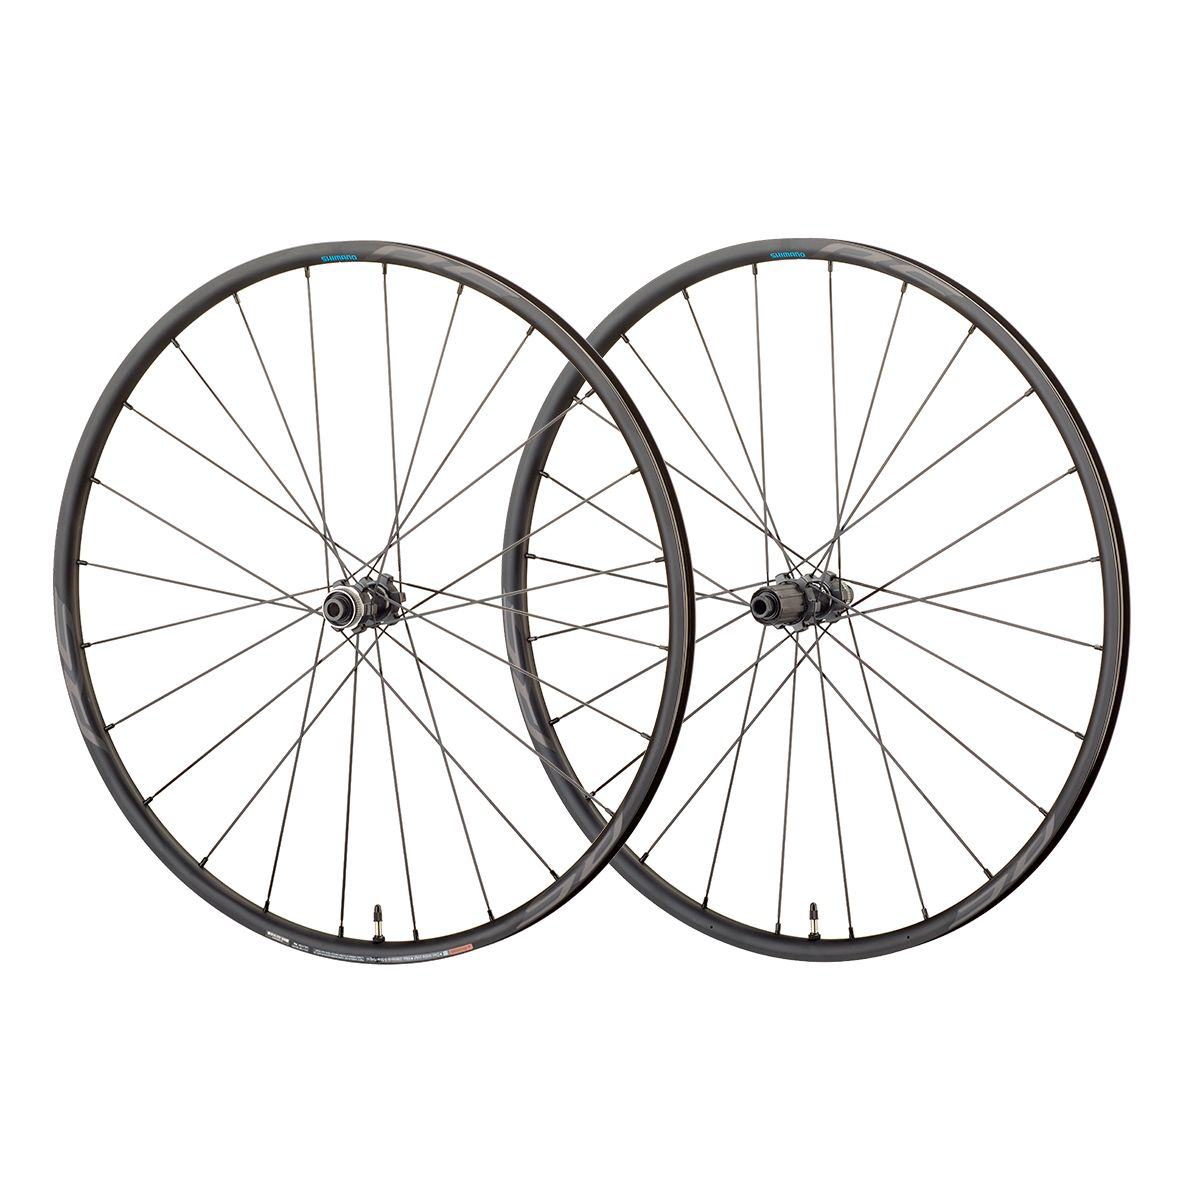 WH-RS370-TL Disc road wheels|WH-RS370-TL Disc road wheels